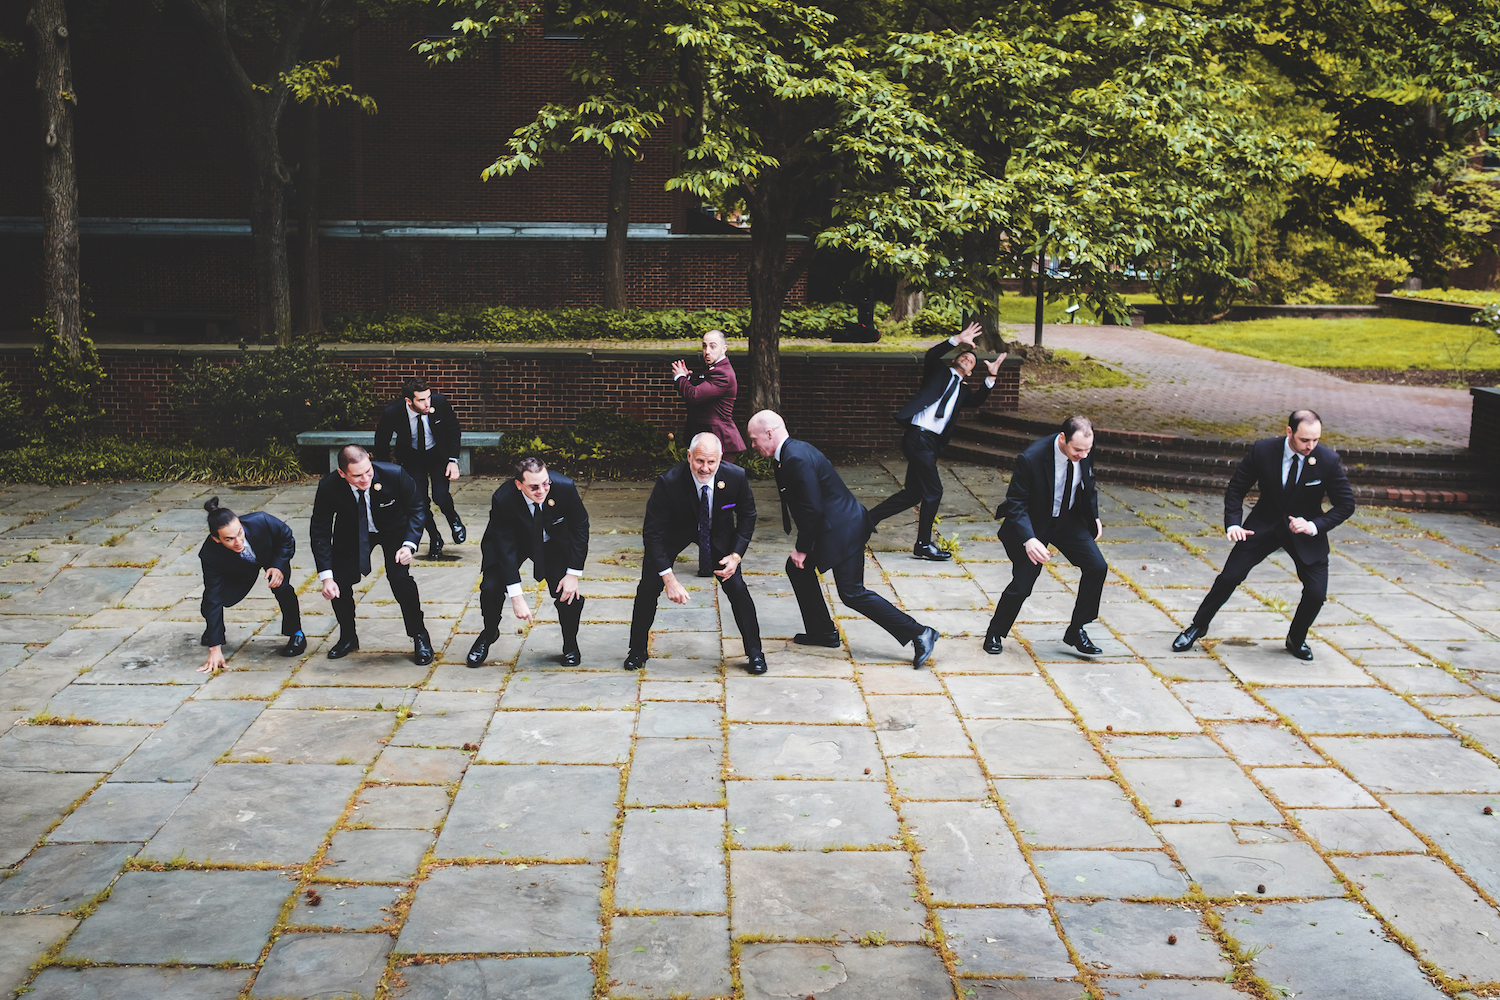 rob-groomsmen-playing-imaginary-football-nj-wedding-photography